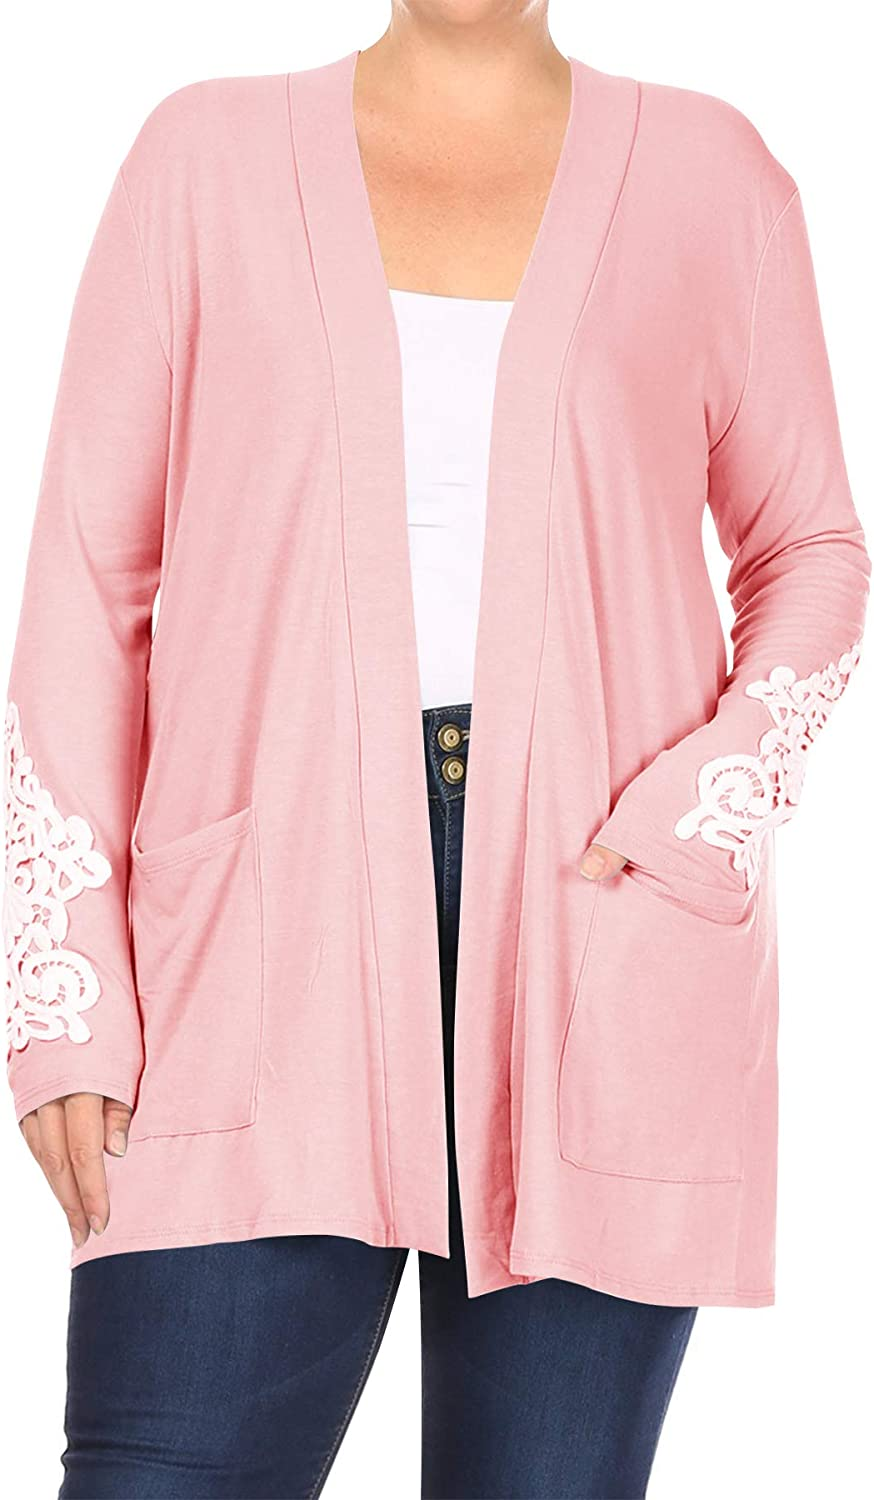 Women's Plus Size Lightweight Solid Long Sleeves Lace Patches Pockets Cardigan XL-3XL